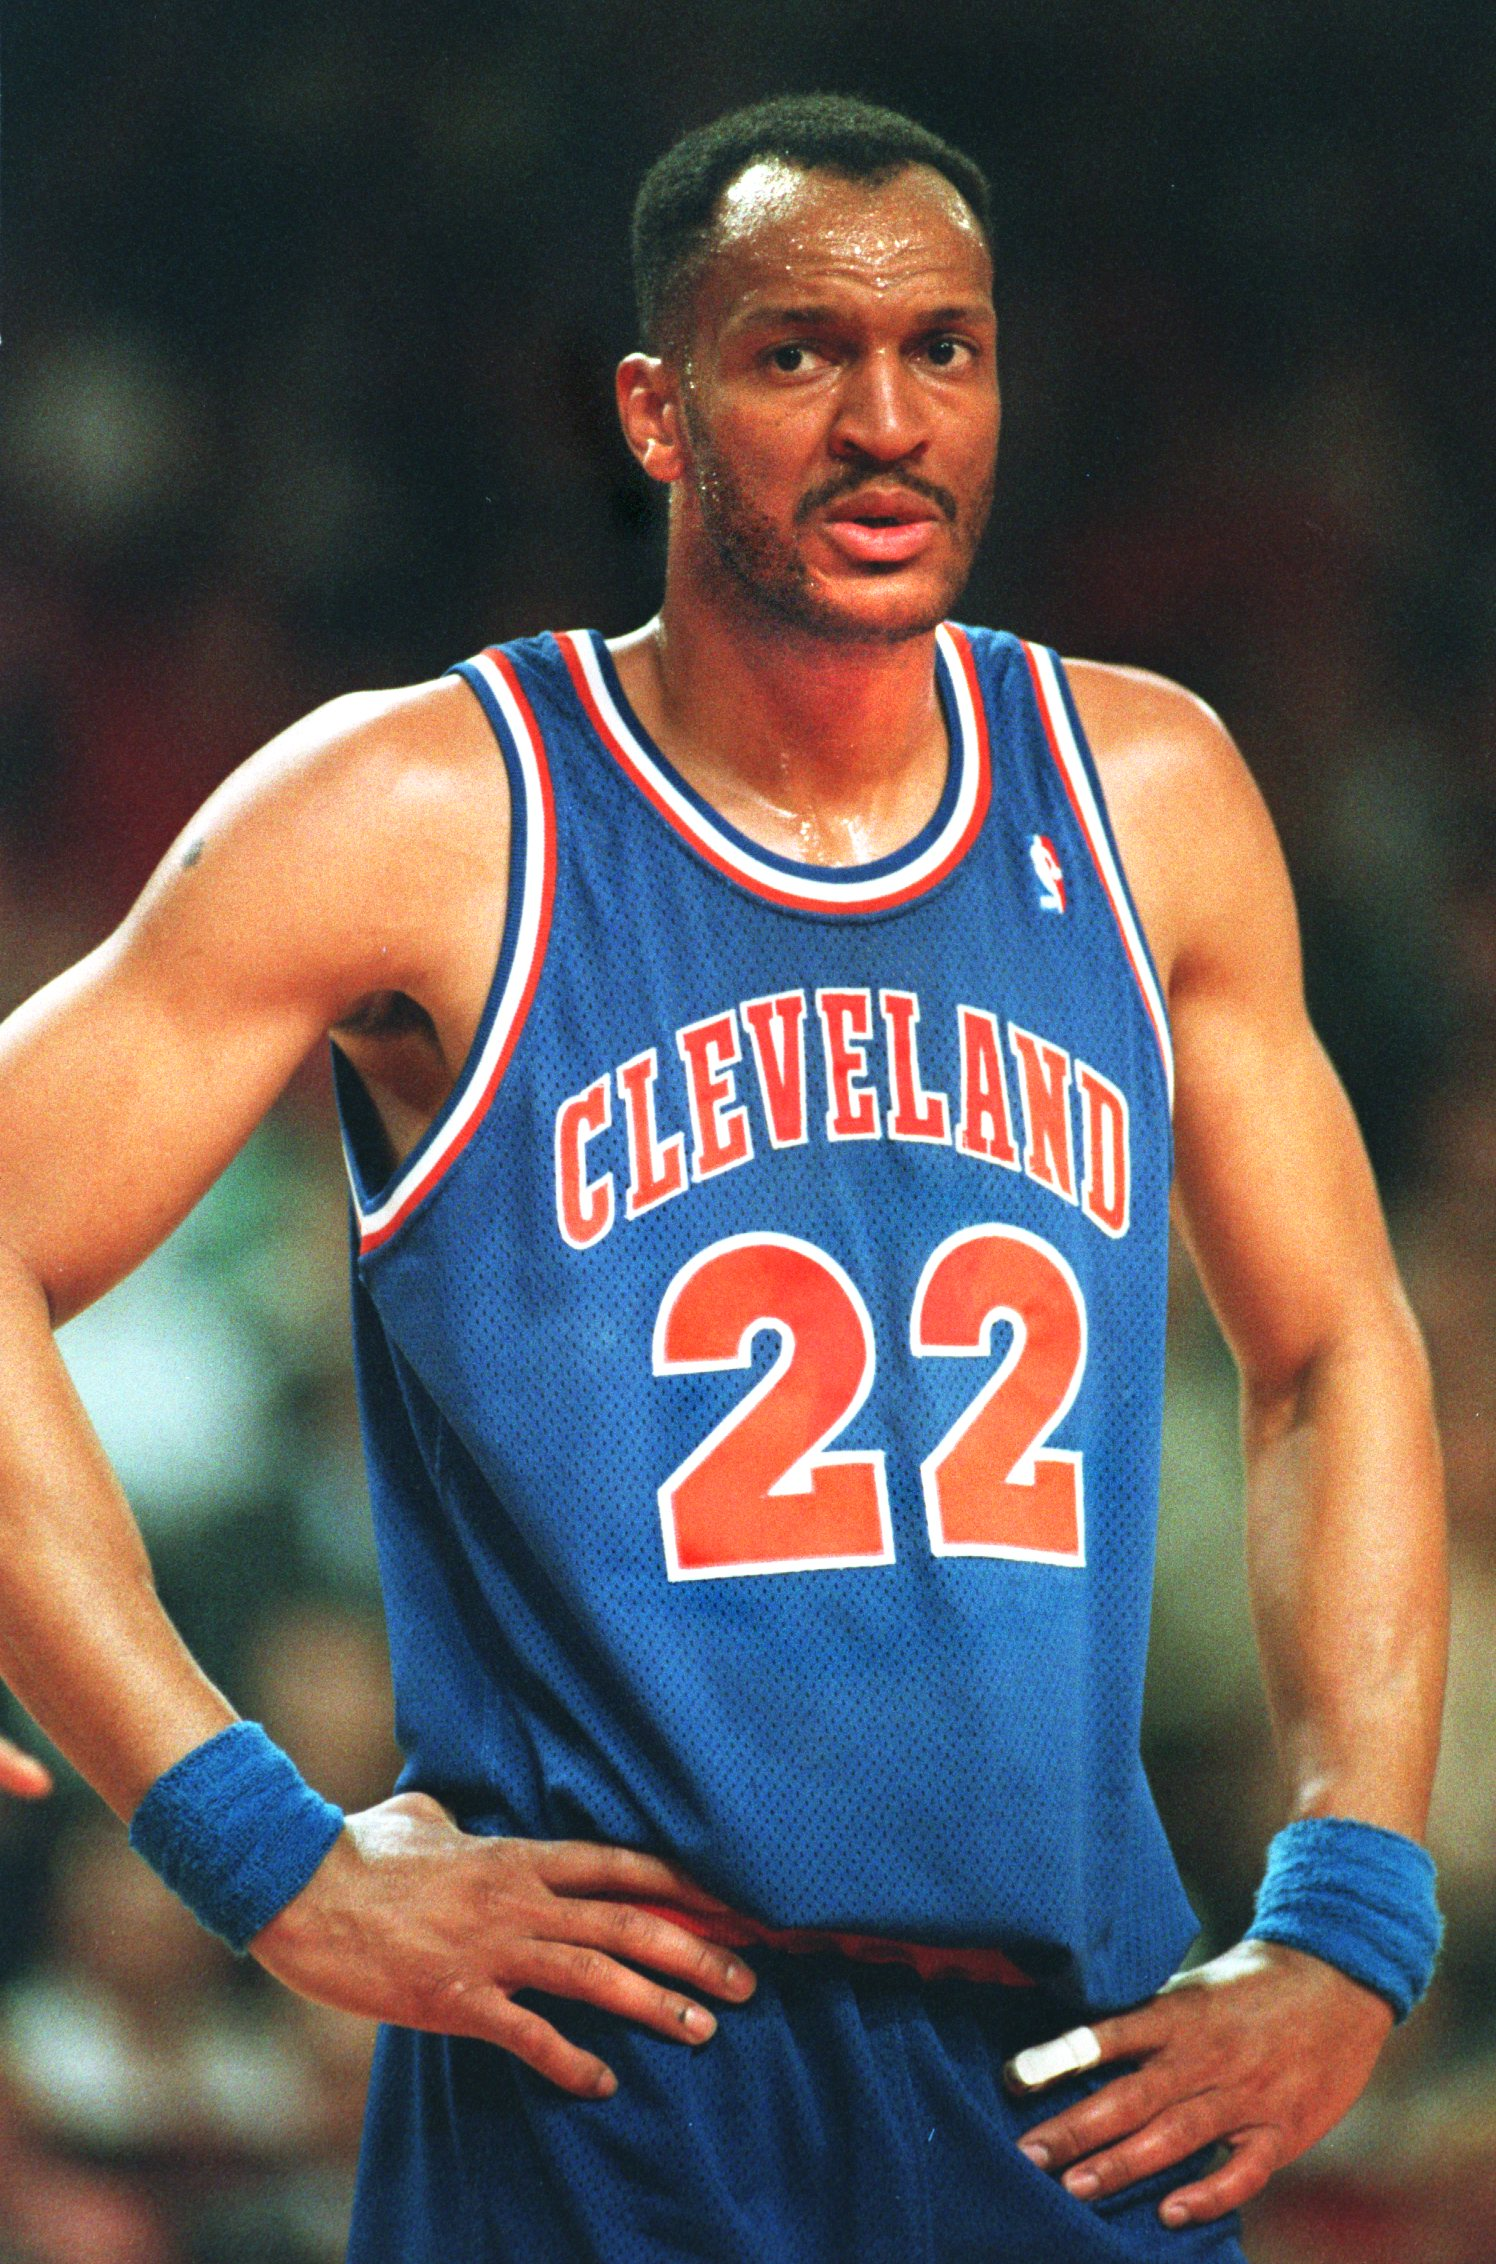 13 MAY 1993:  LARRY NANCE OF THE CLEVELAND CAVALIERS ON THE COURT DURING A 104-85 LOSS TO THE CHICAGO BULLS IN THE SECOND ROUND OF THE NBA PLAYOFFS. Mandatory Credit: Jonathan Daniel/ALLSPORT